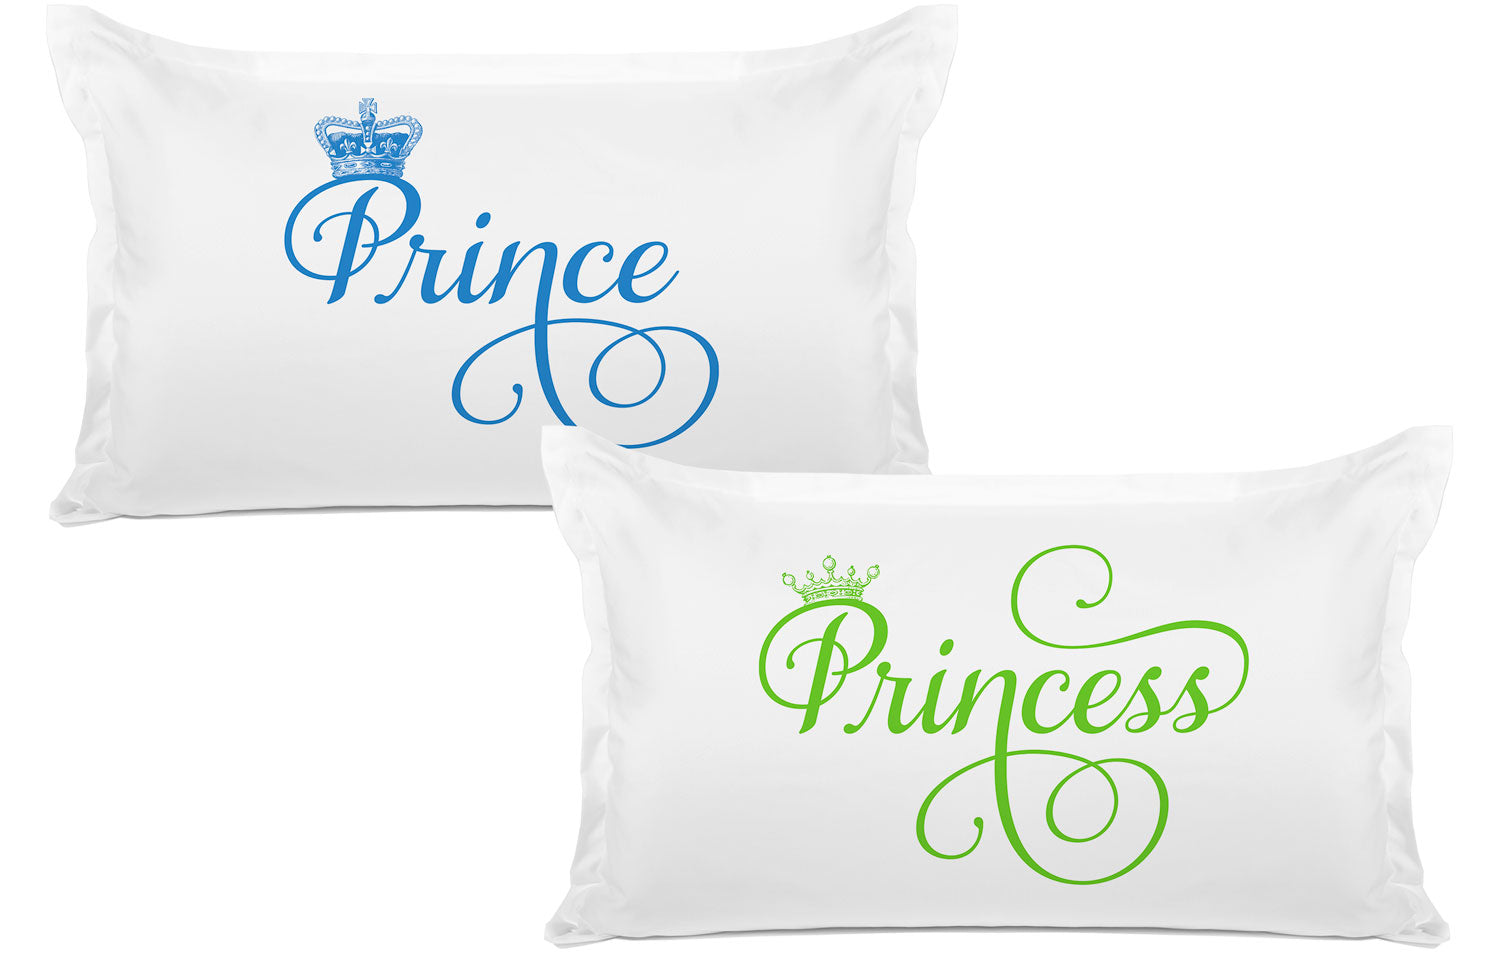 Prince, Princess - His & Hers Pillowcase Collection-Di Lewis